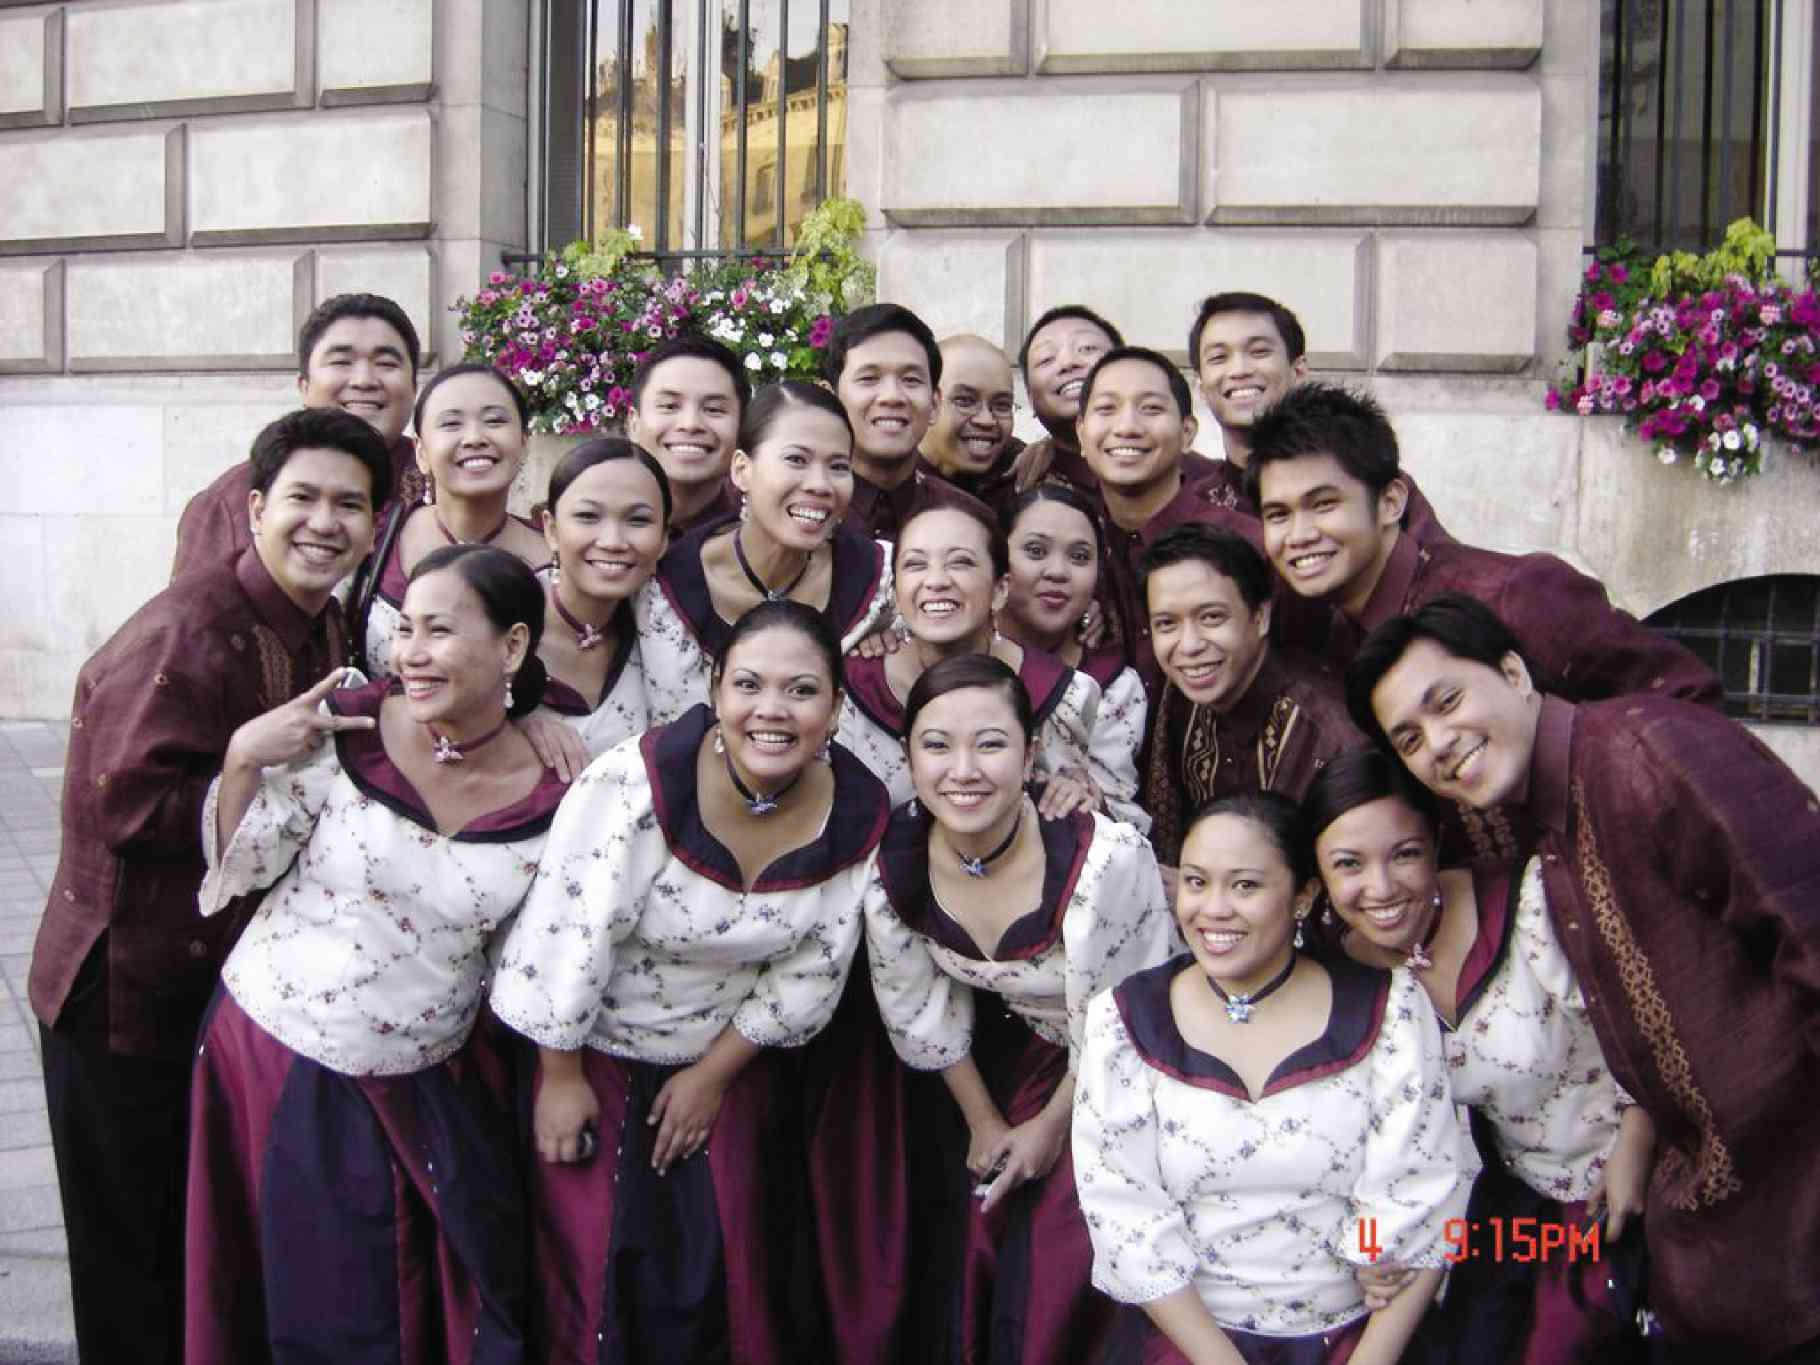 THE PHILIPPINE Madrigal Singers at the Florilege Vocal de Tours France